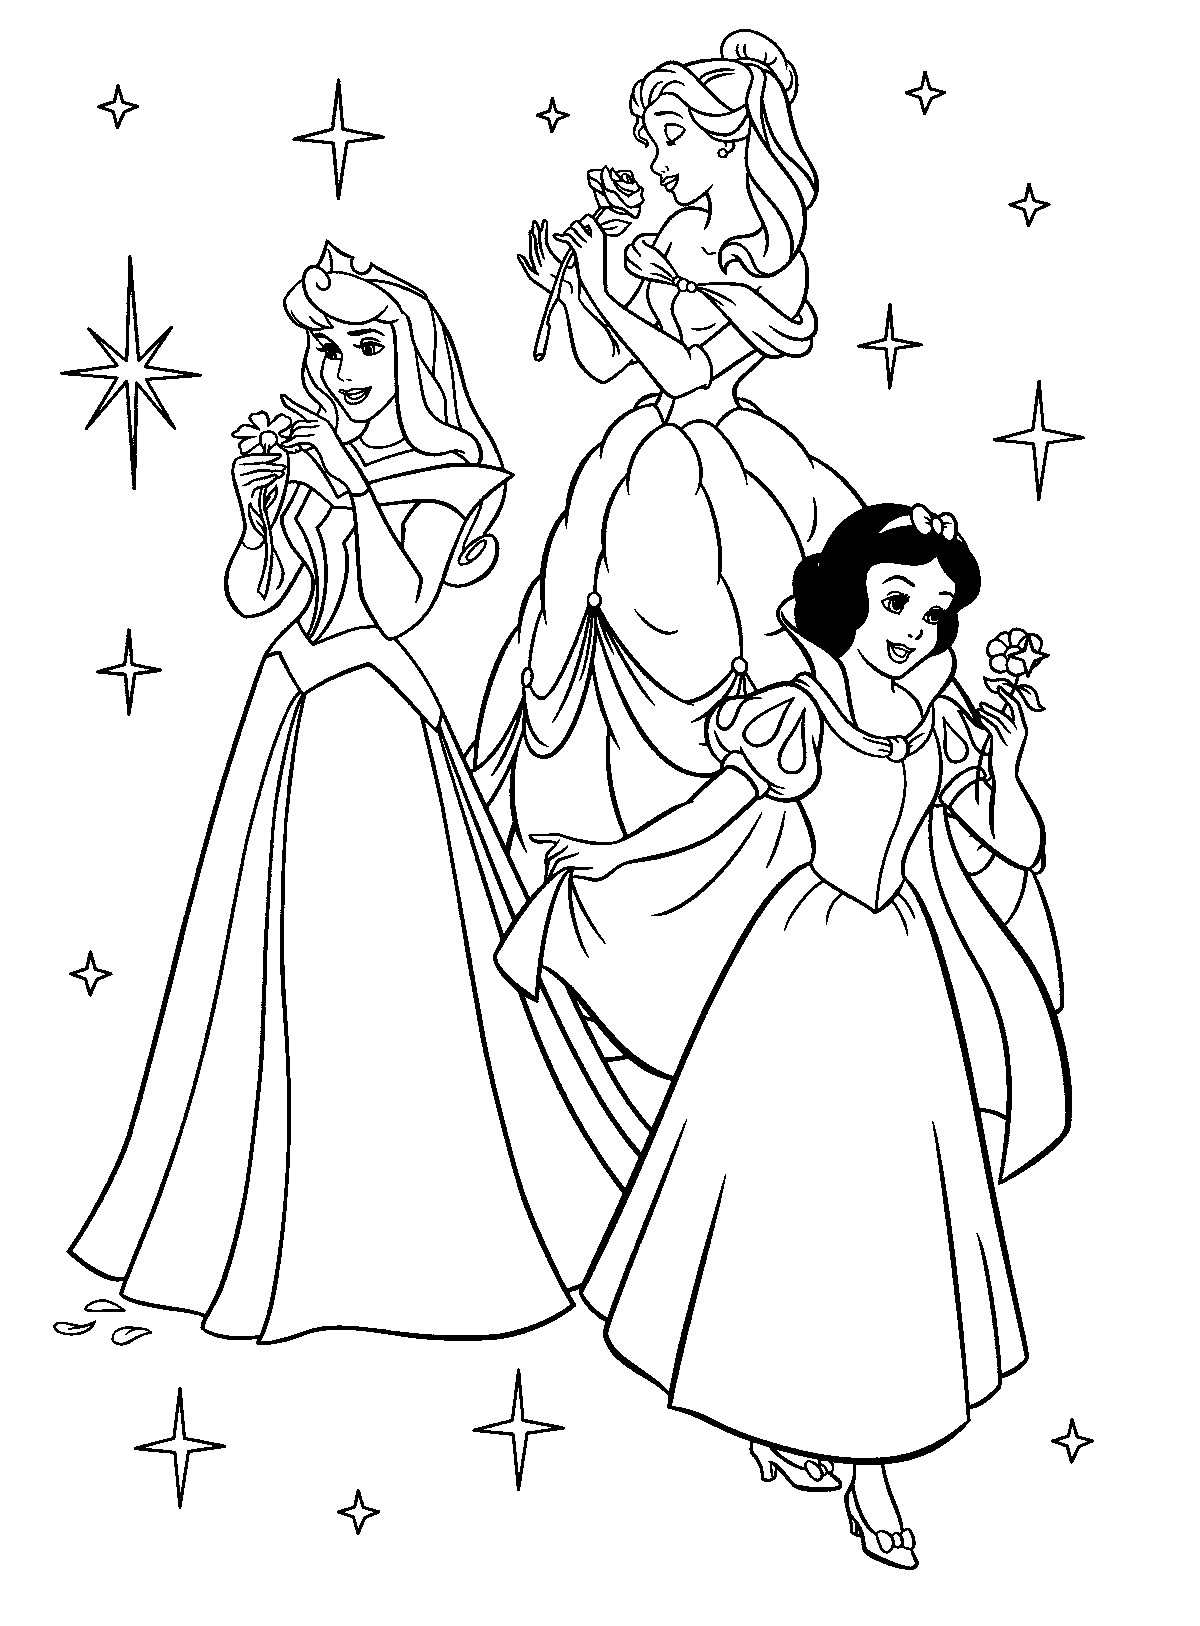 Best ideas about Ariel Princess Coloring Pages For Kids . Save or Pin Princess Coloring Pages Best Coloring Pages For Kids Now.